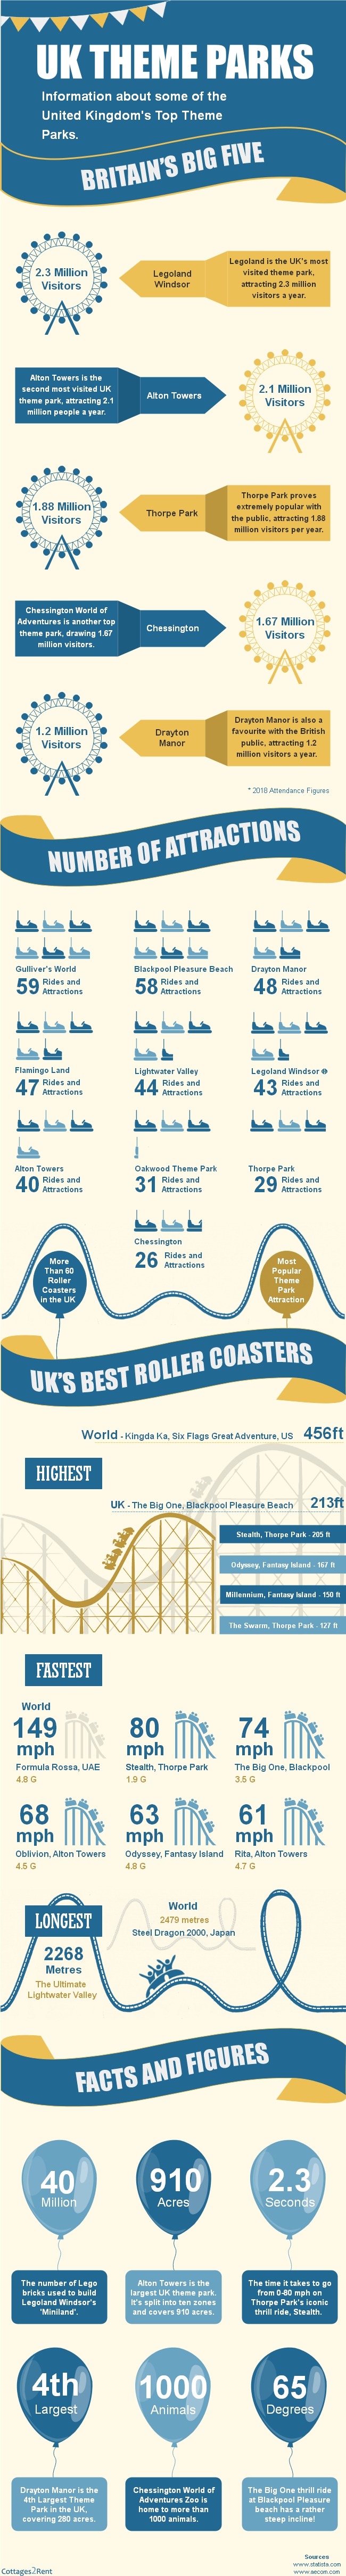 Top Theme Parks in the United Kingdom